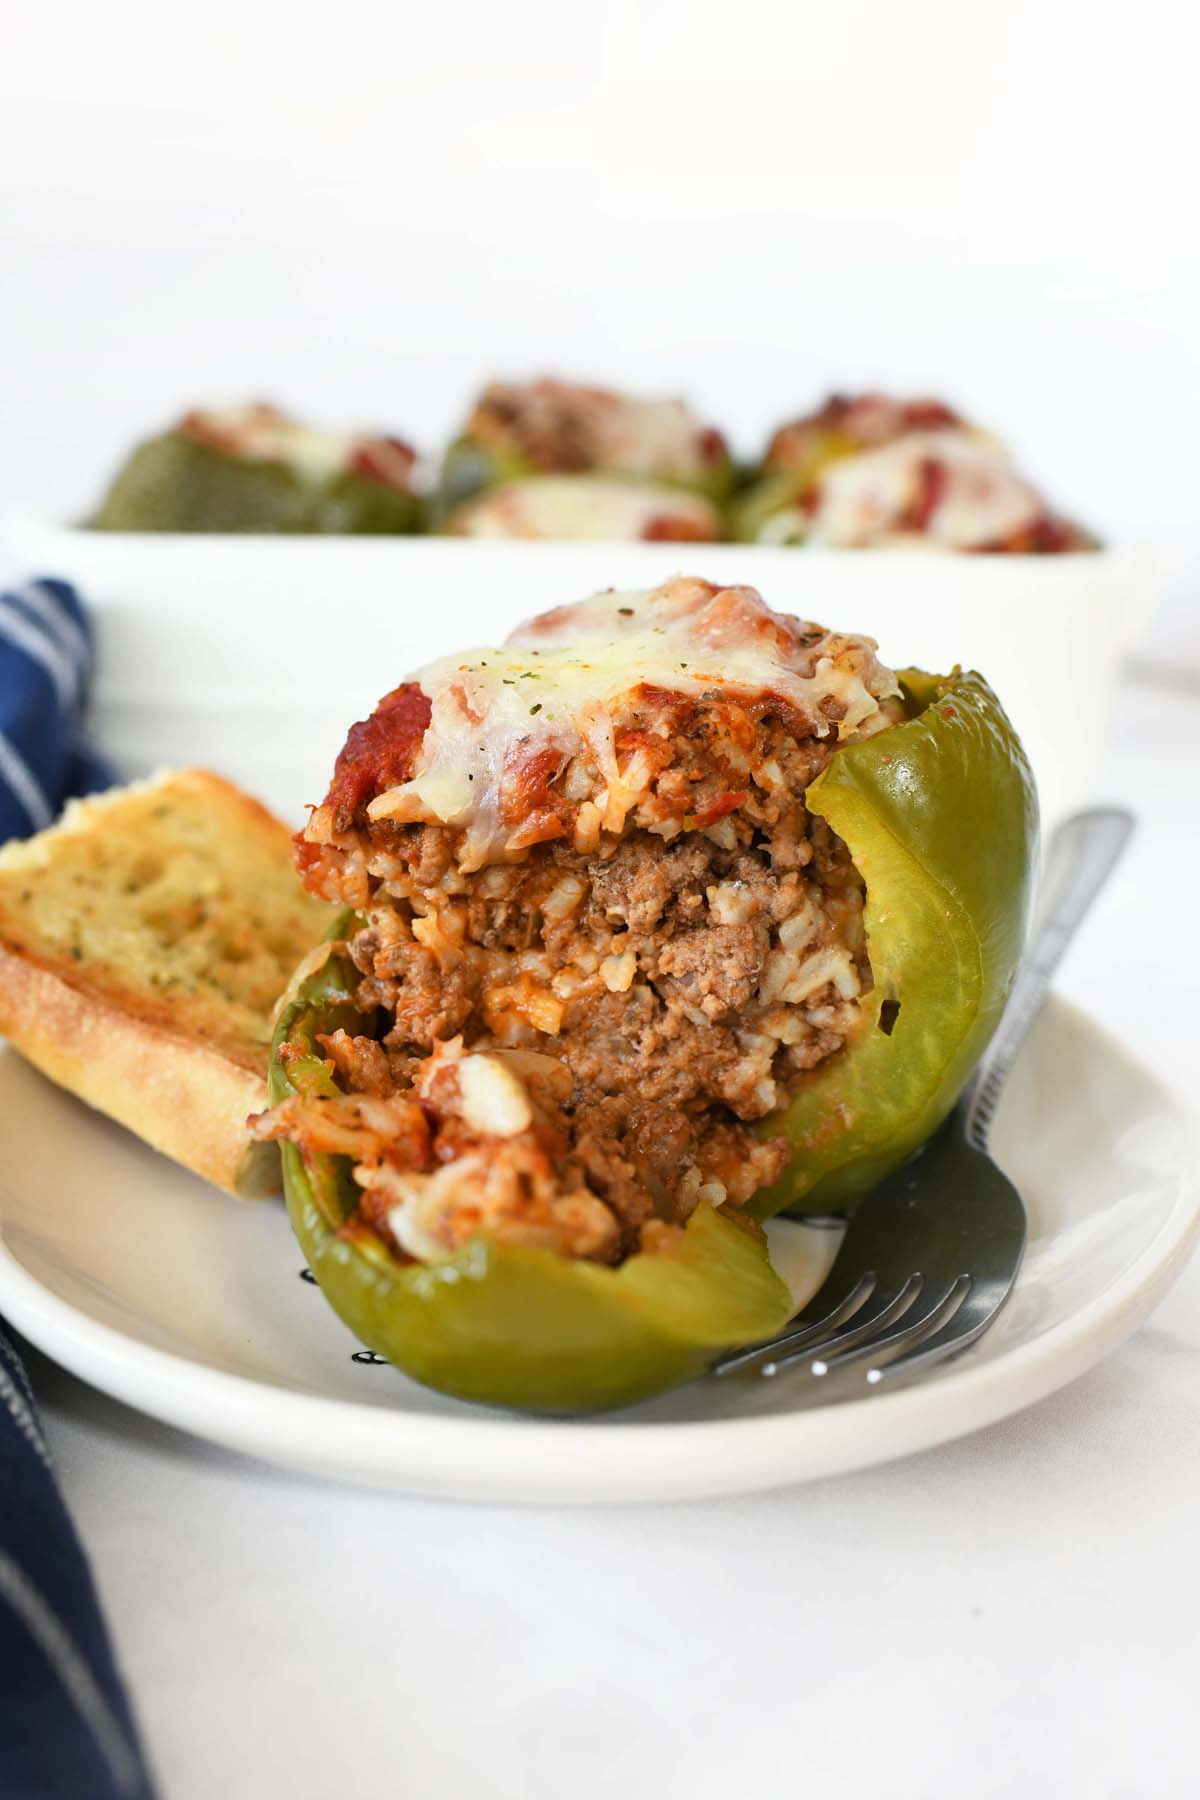 Stuffed Green Bell Peppers with meat and rice cut open to show the insides.